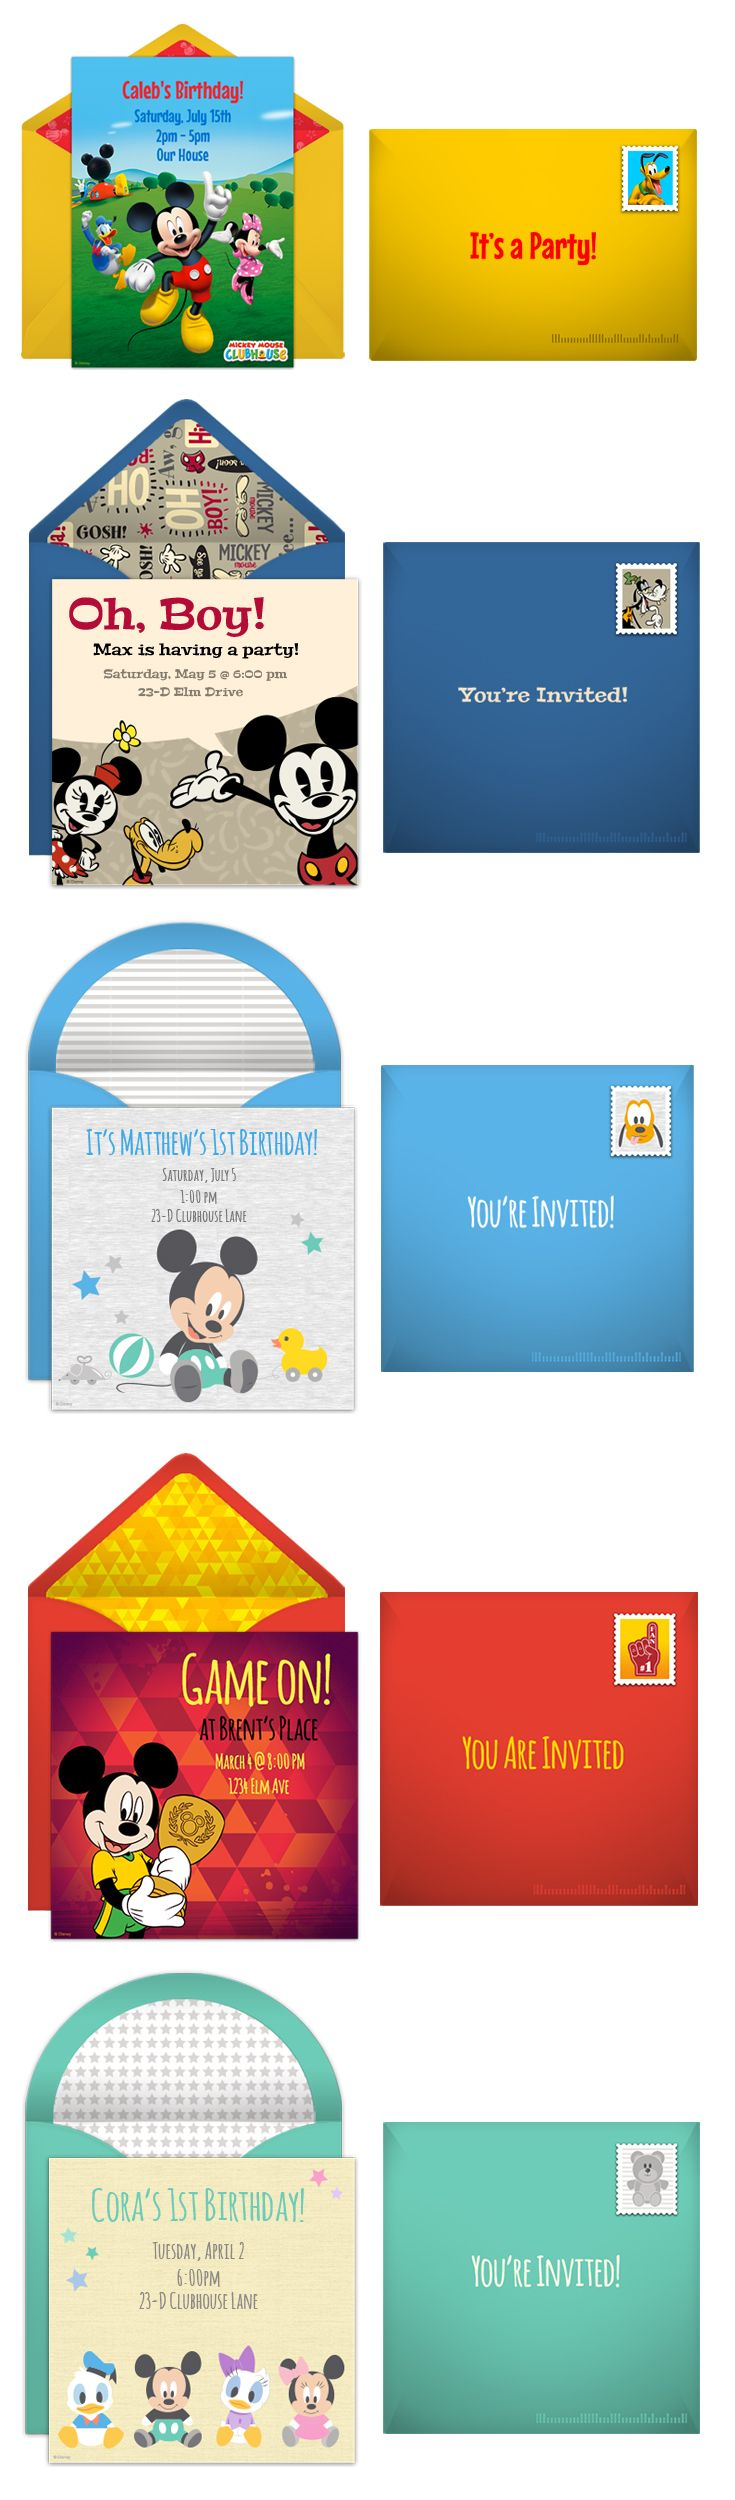 Paper invites are too formal, and emails are too casual. Get it just right with online invitations from Punchbowl. We've got everything you need for your Disney themed party.  http://www.punchbowl.com/disney/groups/mickey-mouse/?utm_source=Pinterest&utm_medium=1.31P